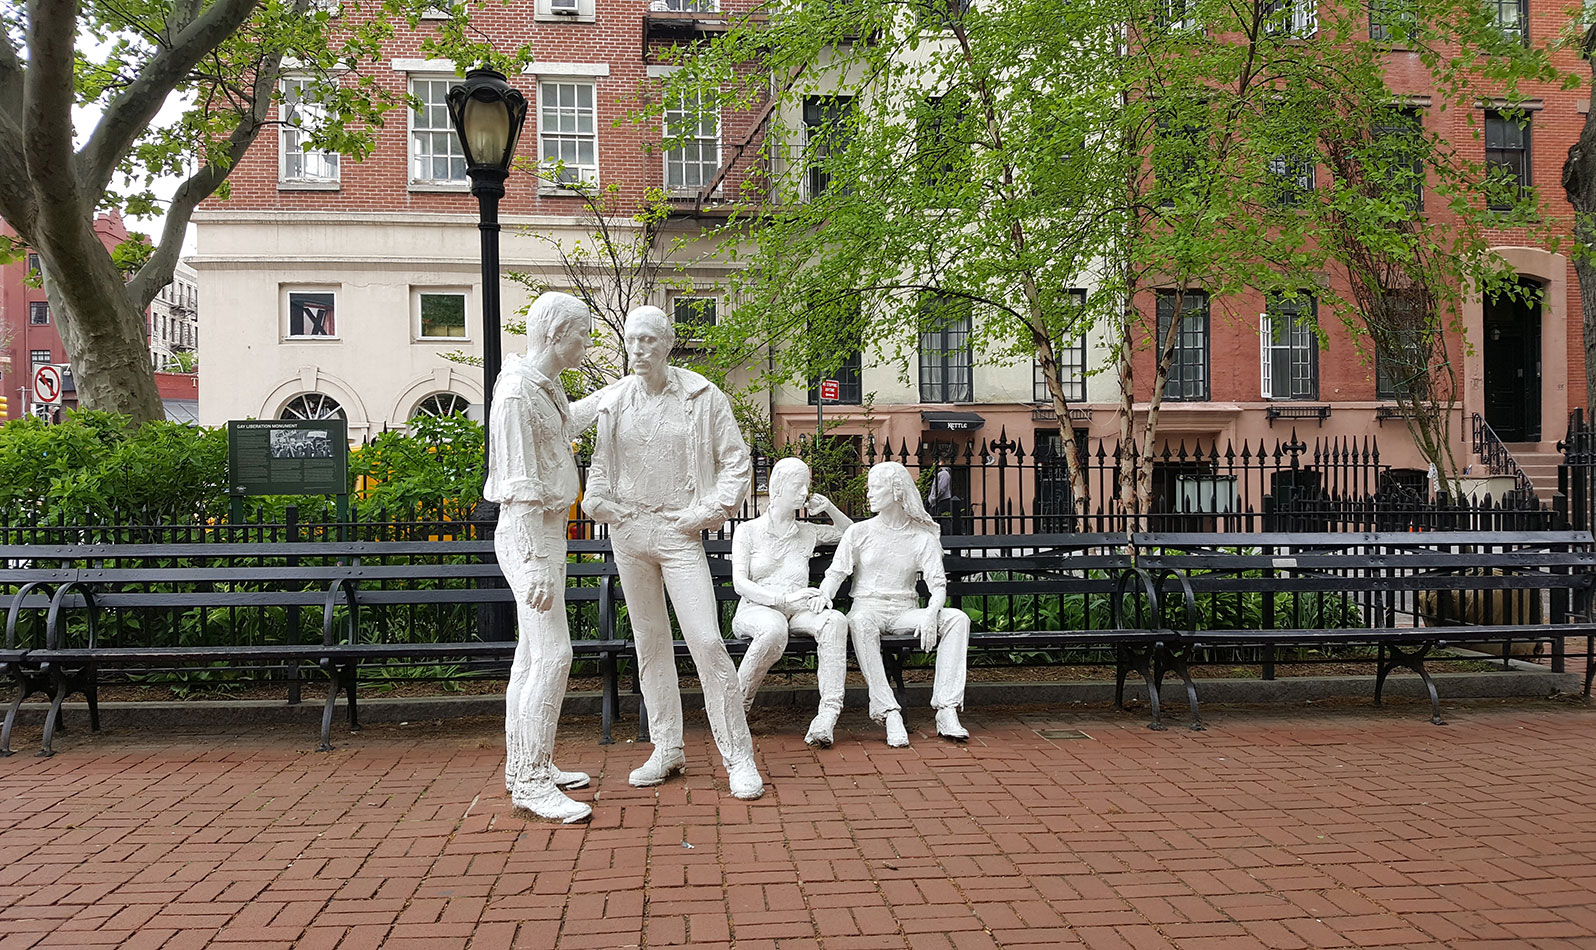 The Gay Liberation Monument, a historic LGBTQ site, features four figures - two standing males and two seated females - are positioned on the northern boundary of the park, in natural, easy poses.